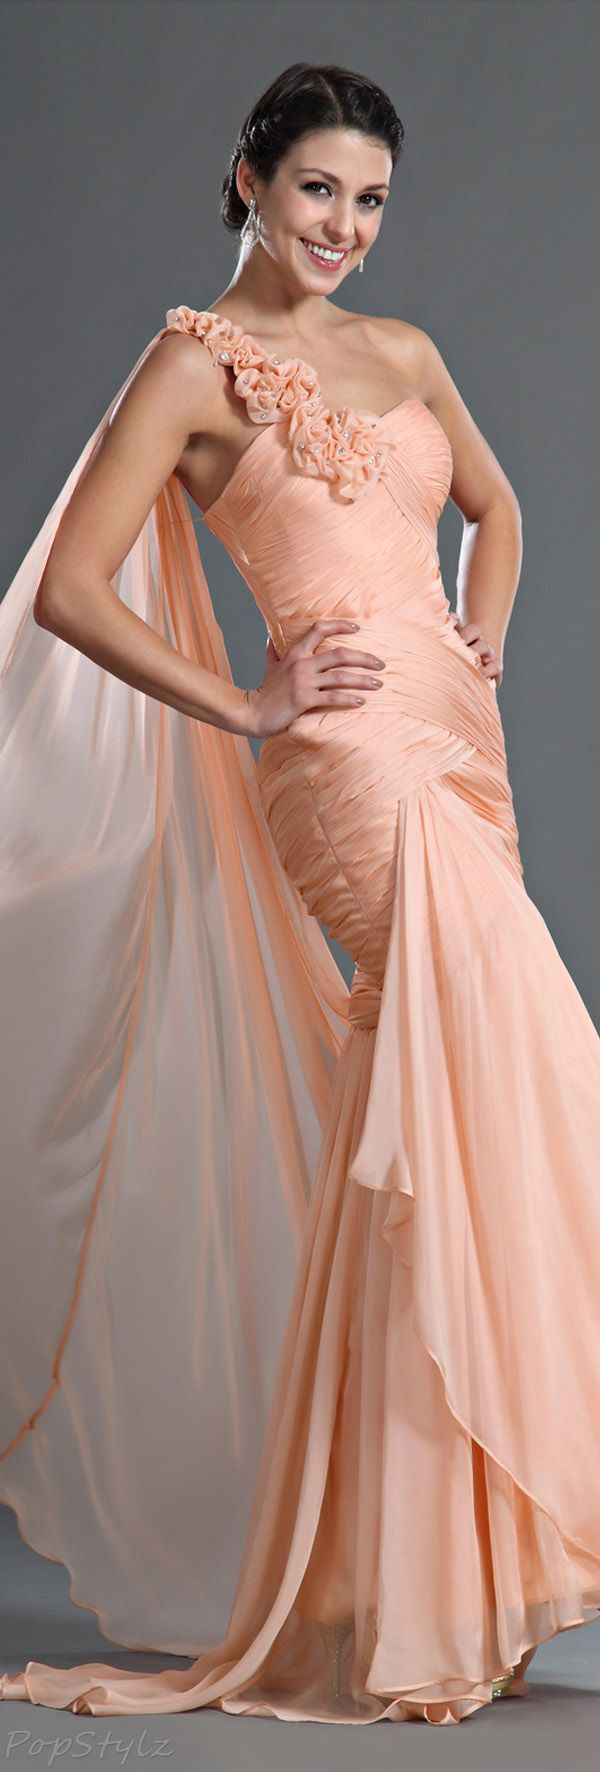 Lovely Sweetheart Gown